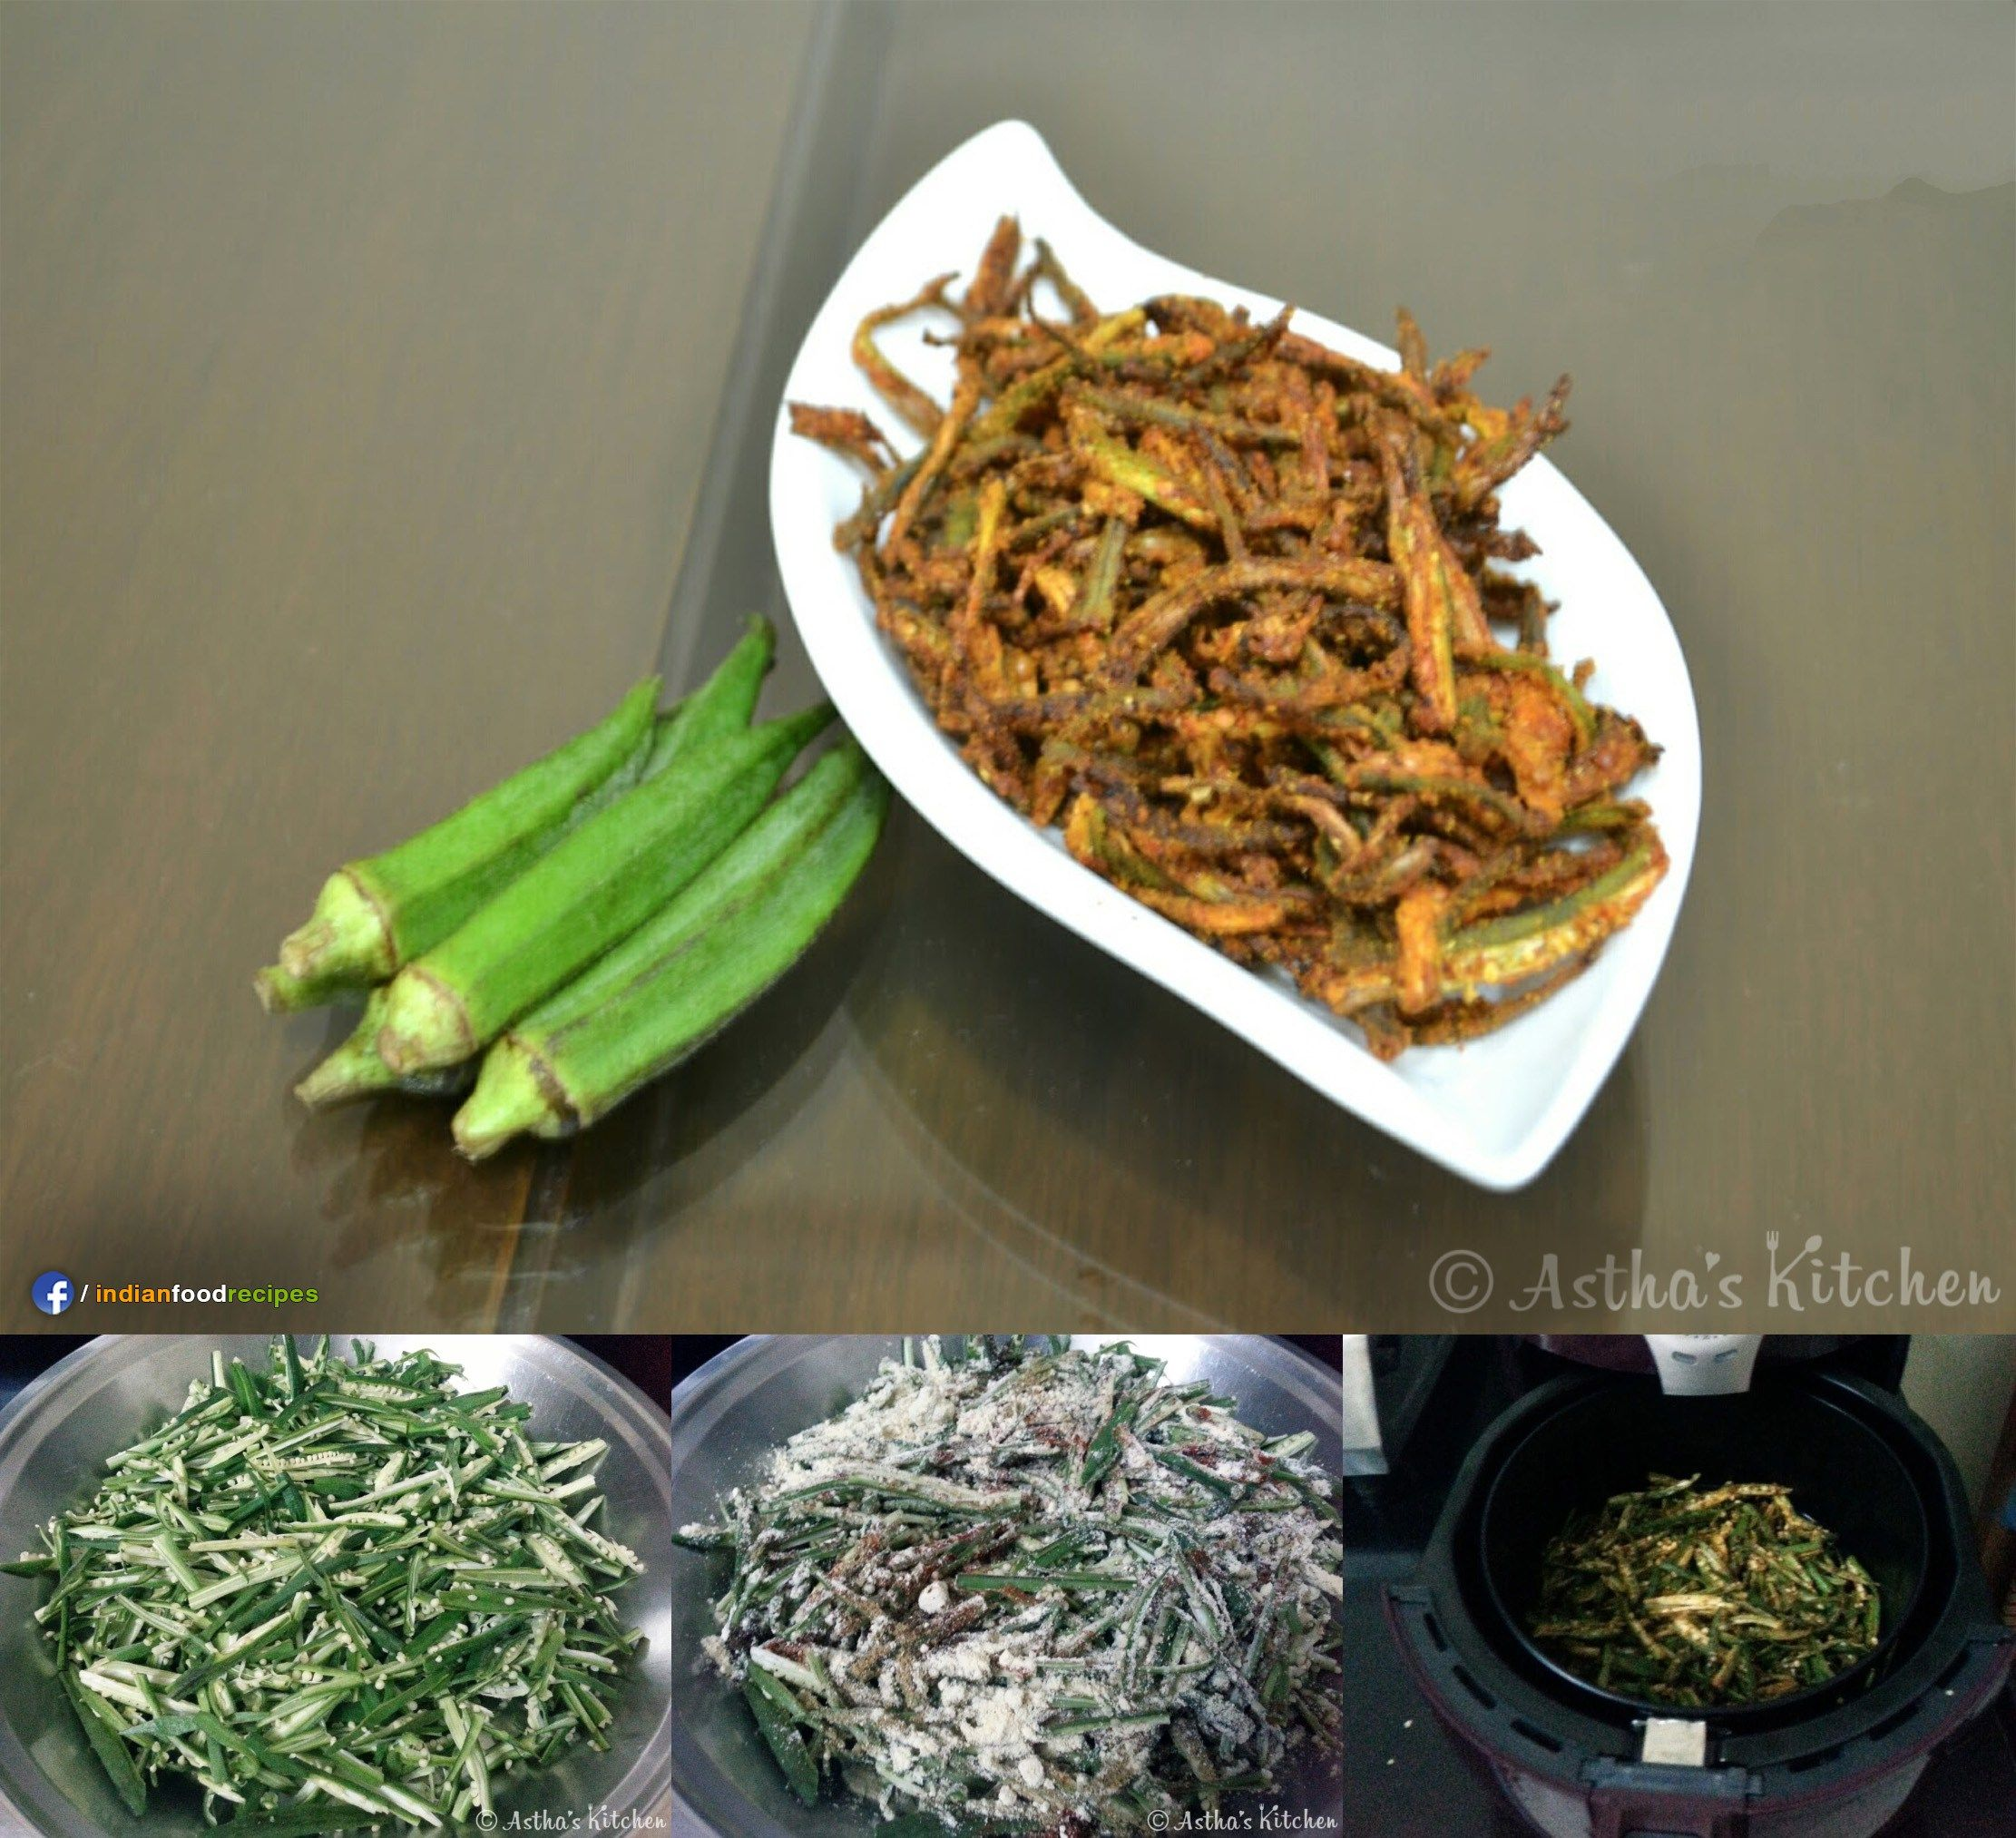 Kurkuri Bhindi (Okra) In Air Fryer recipe step by step